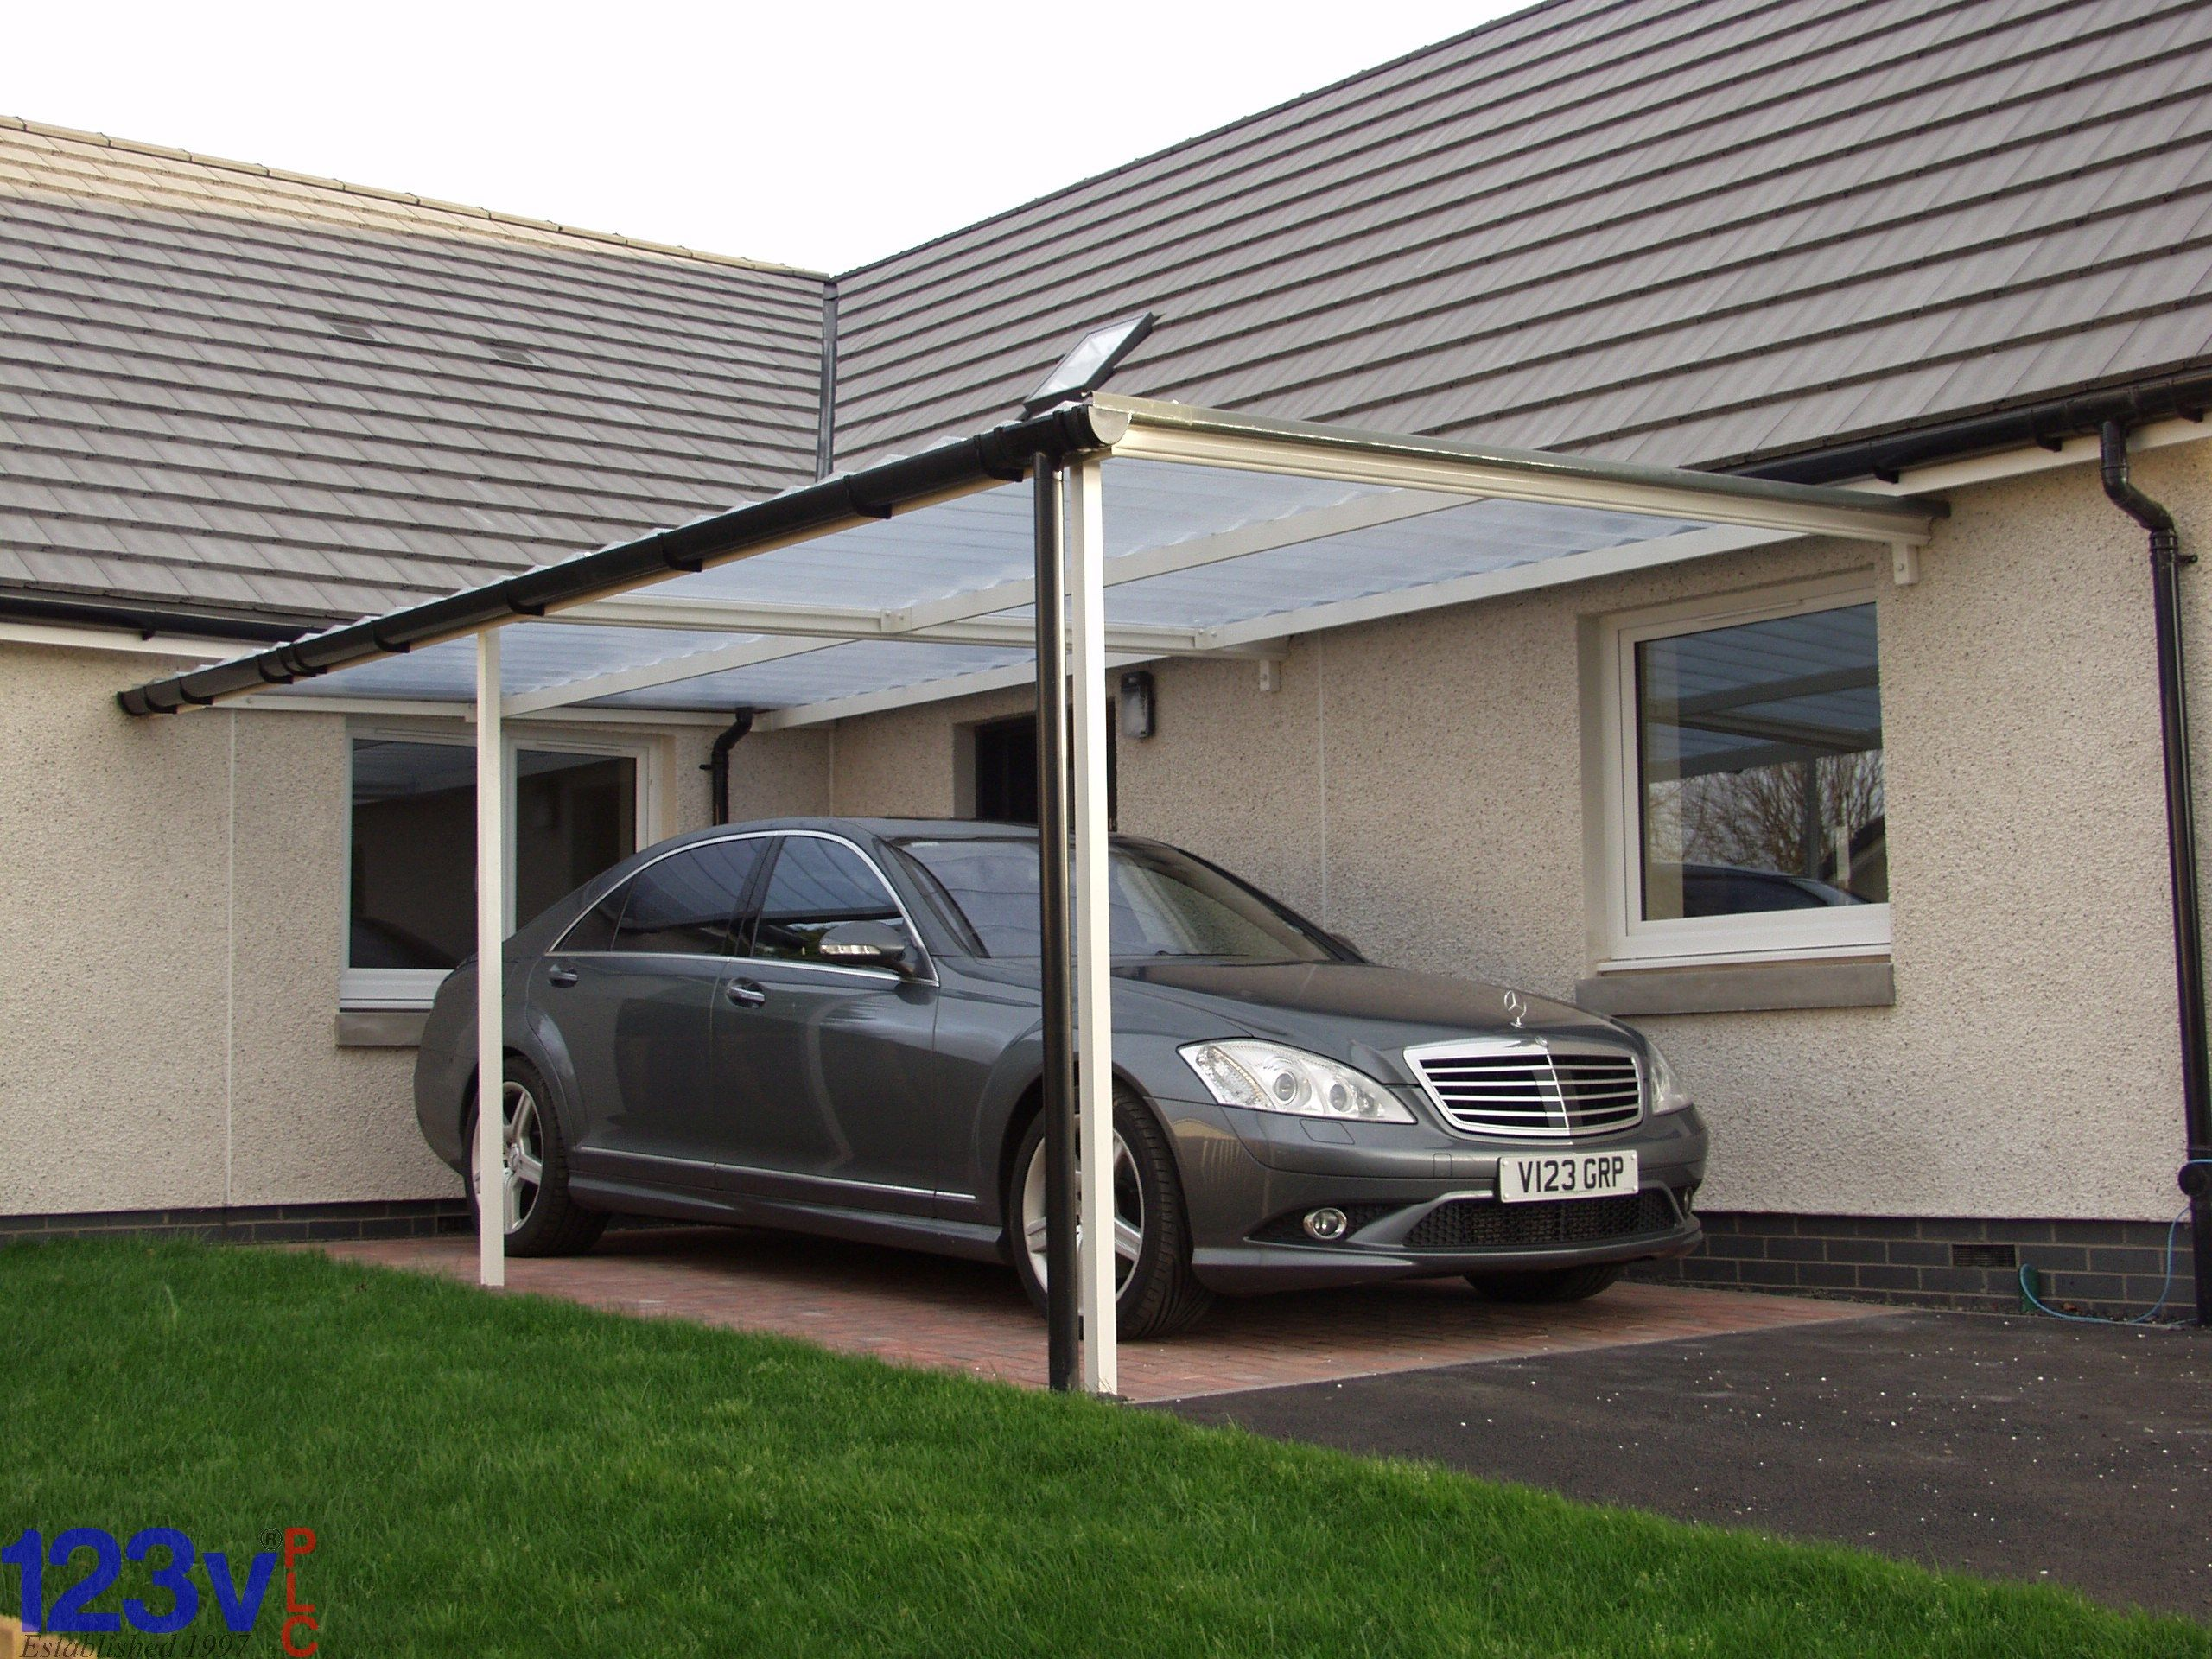 123v Carport Canopy, neat, simple, practical. in & out of